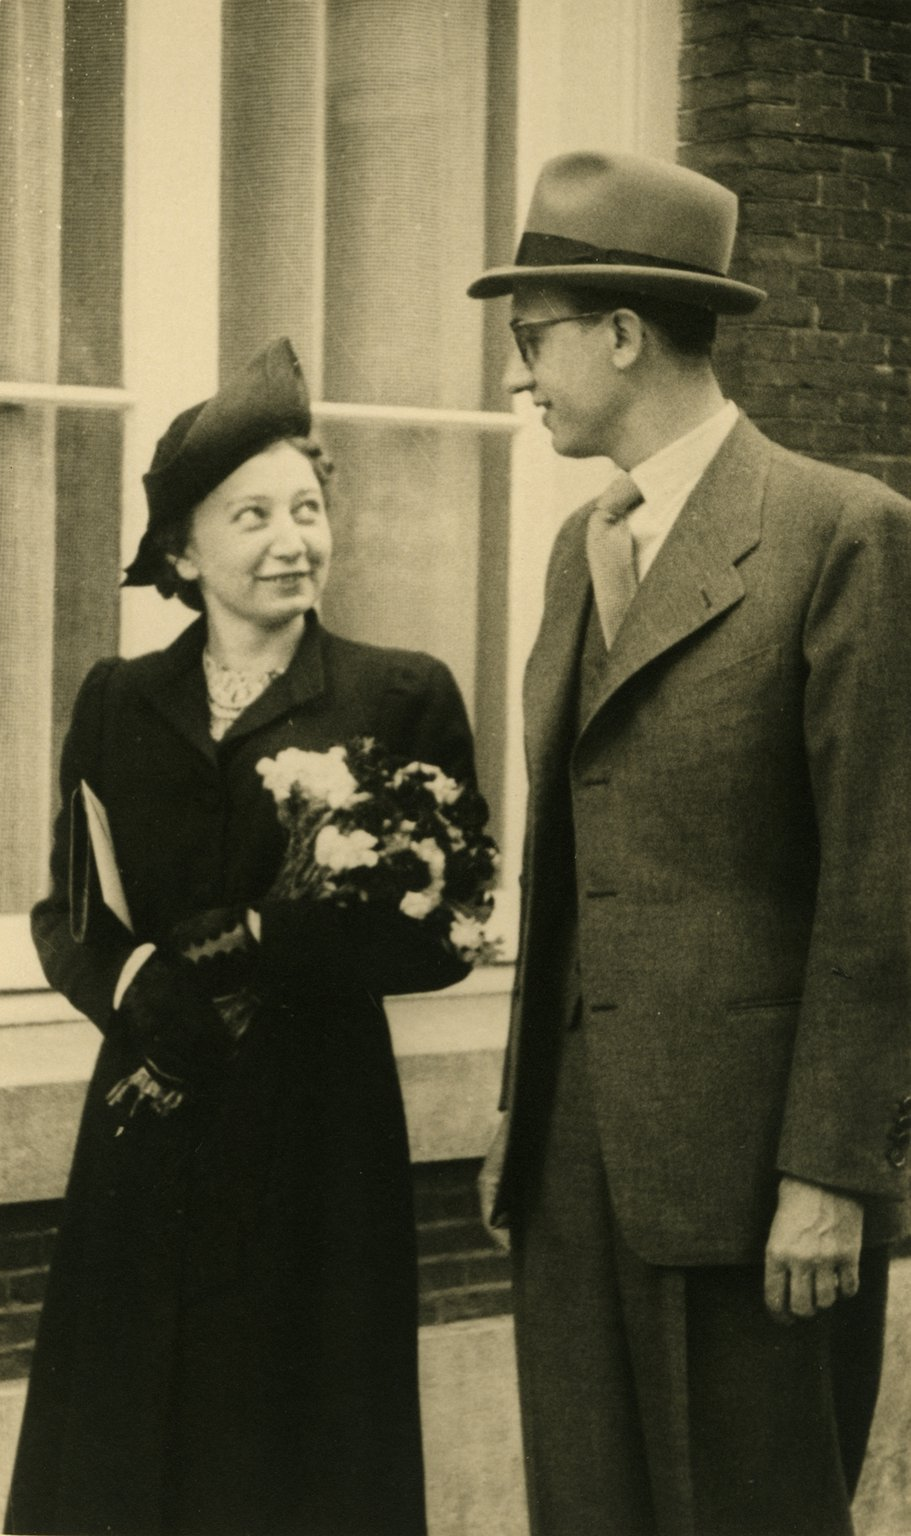 The wedding of Miep and Jan Gies, 16 July 1941.